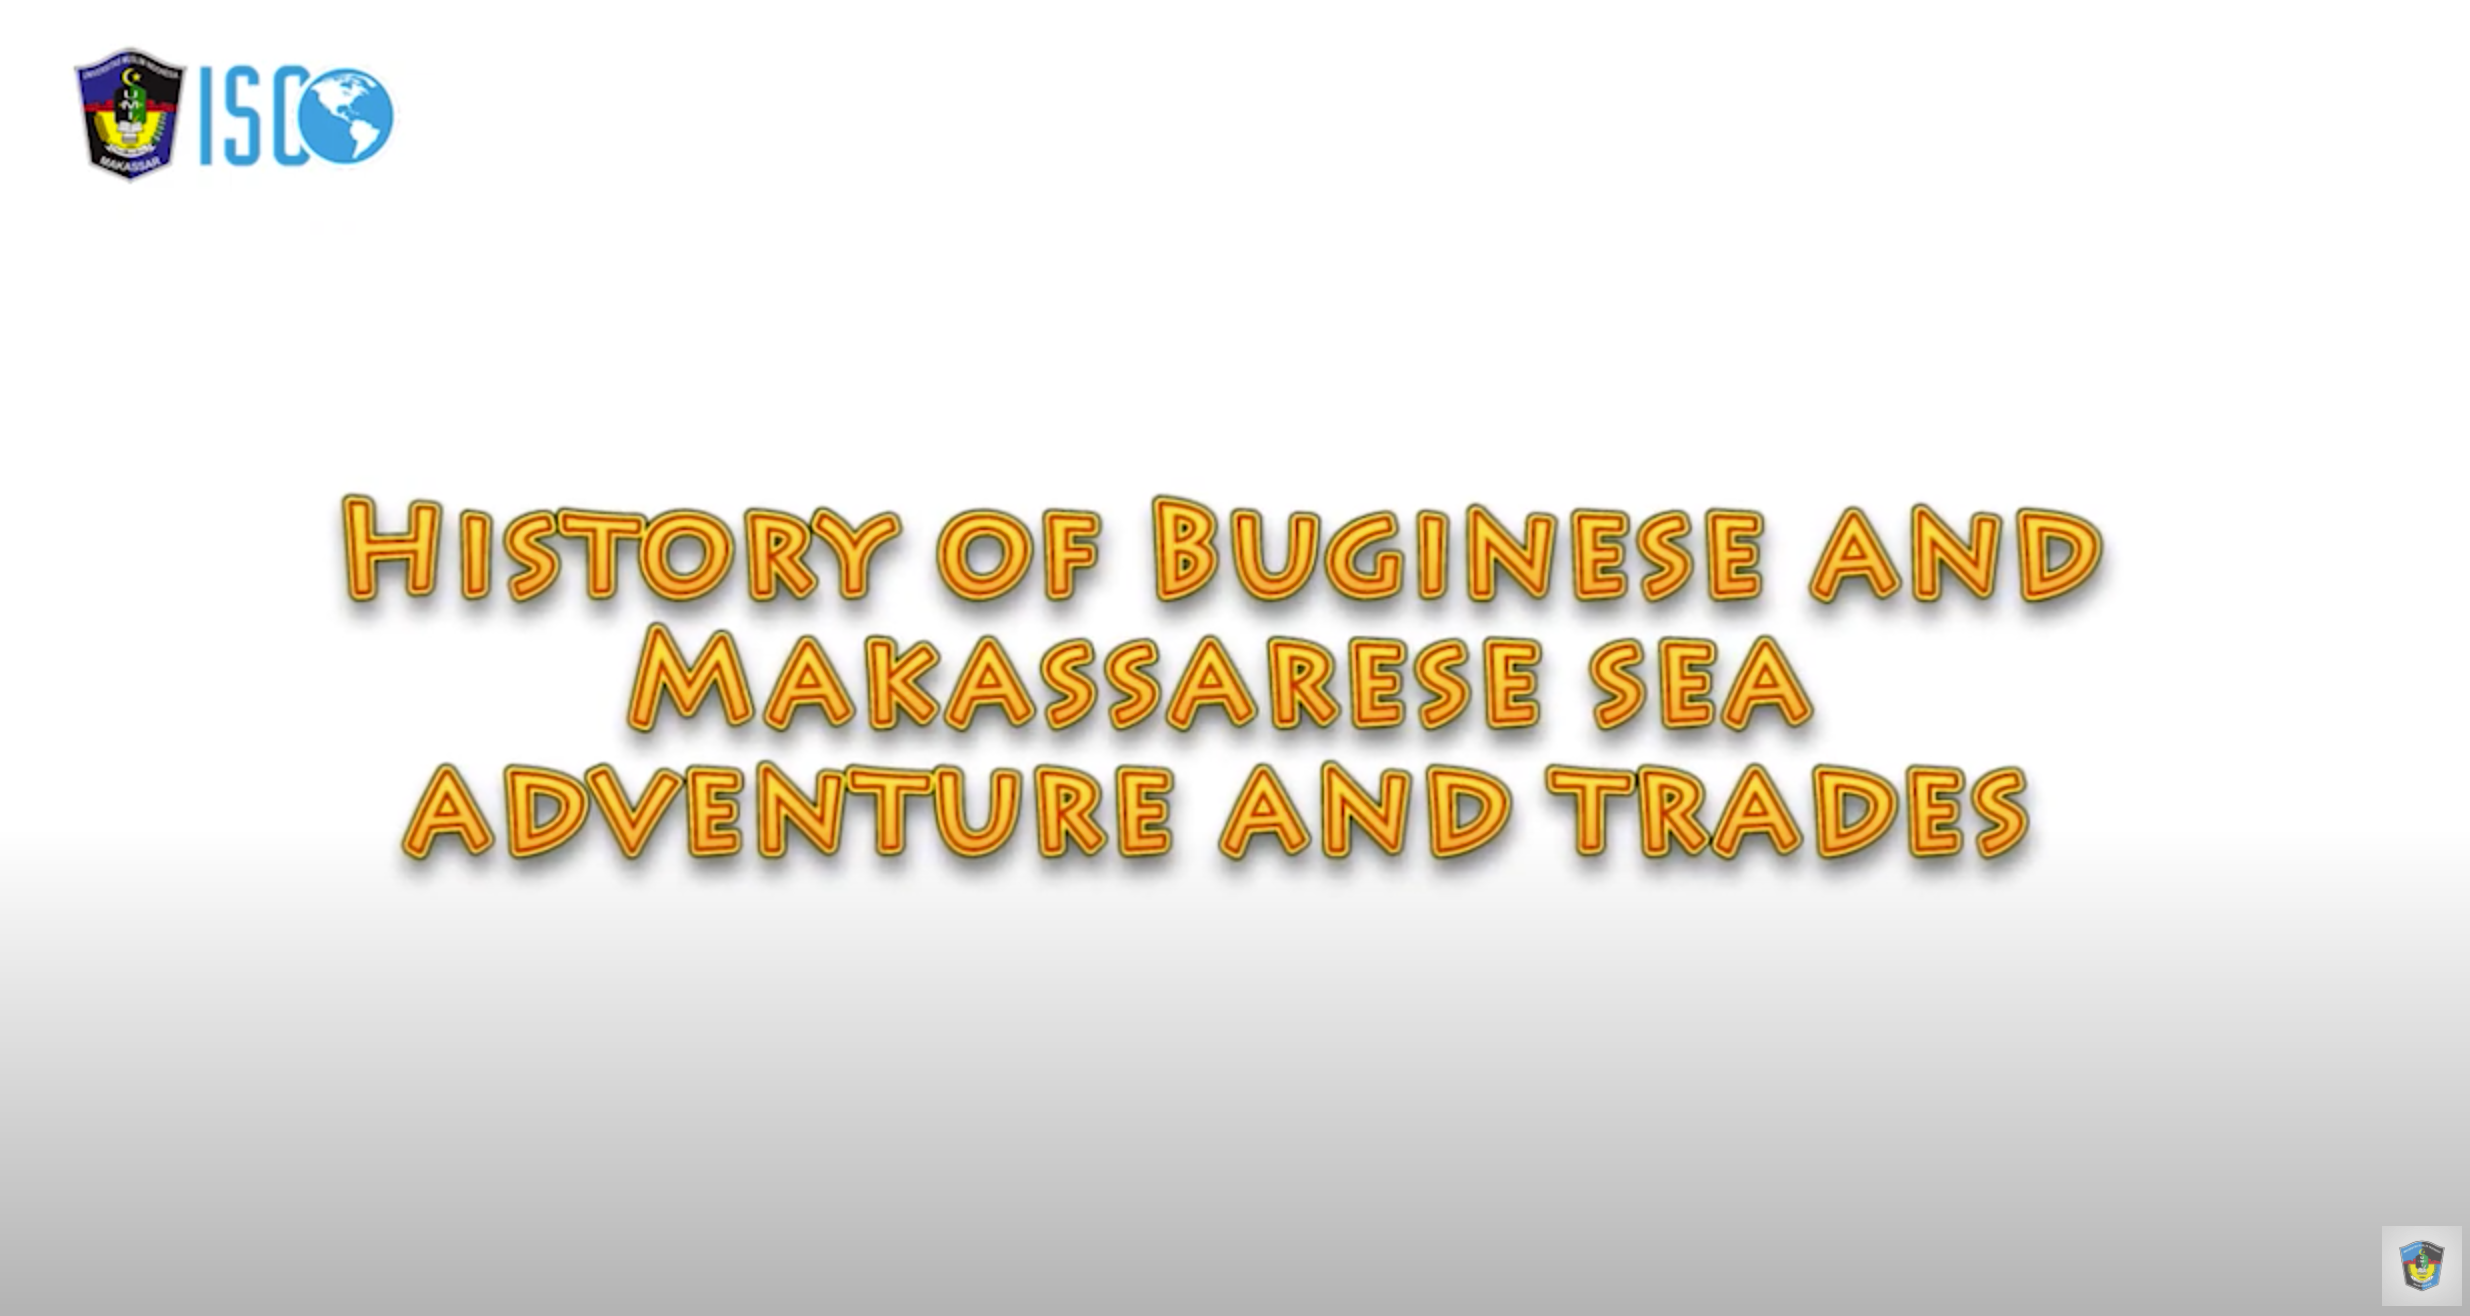 History of Buginese and Makassarese sea adventure and trades